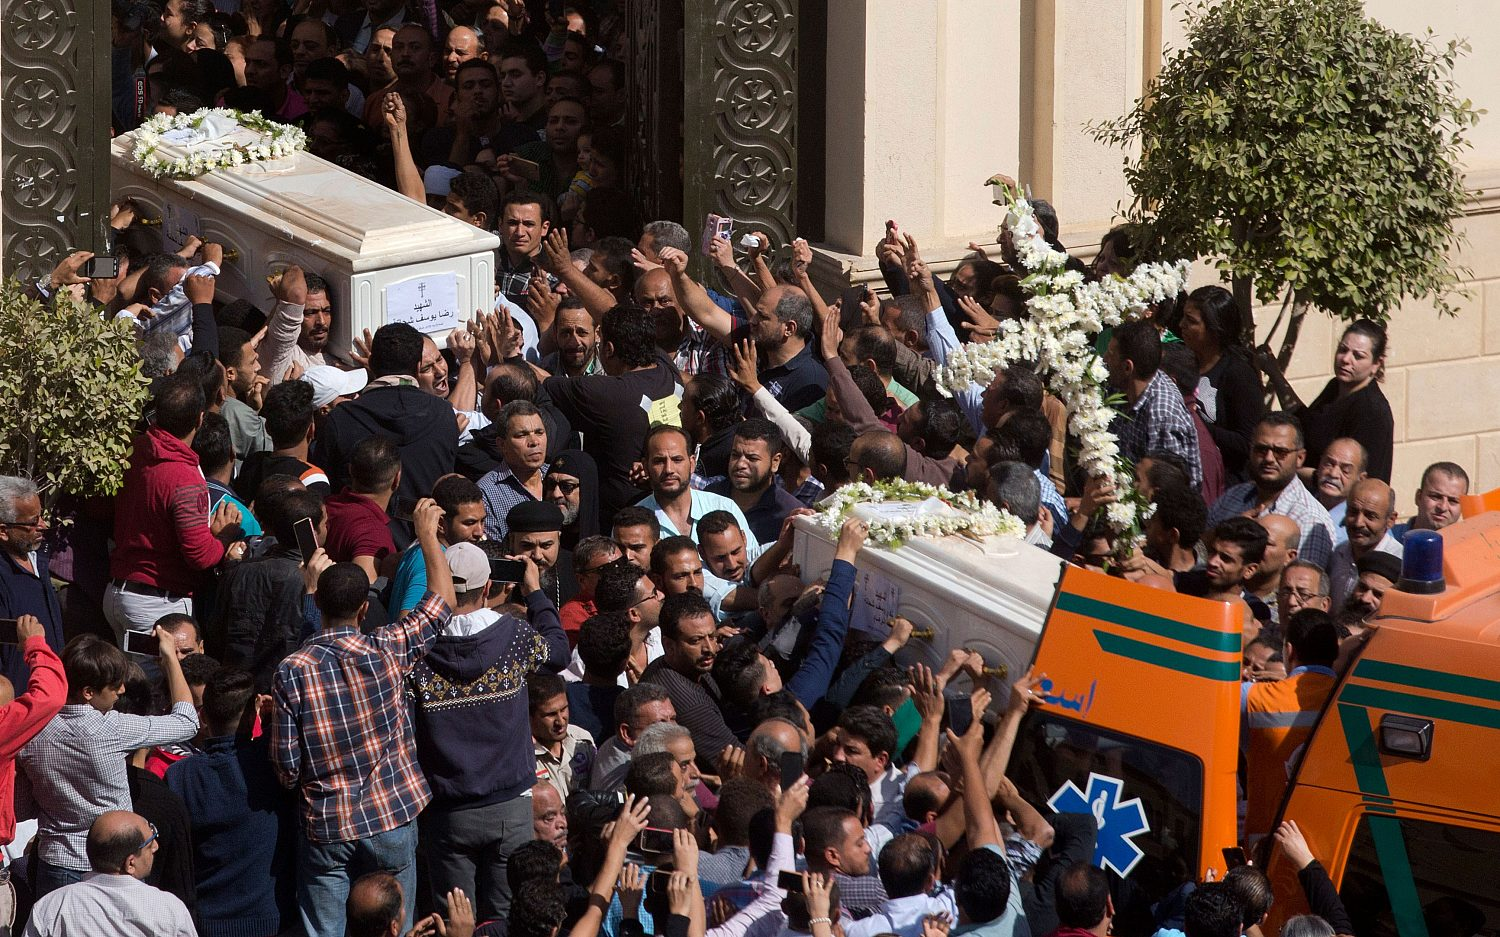 'The terrorists had their fun with the martyrs'